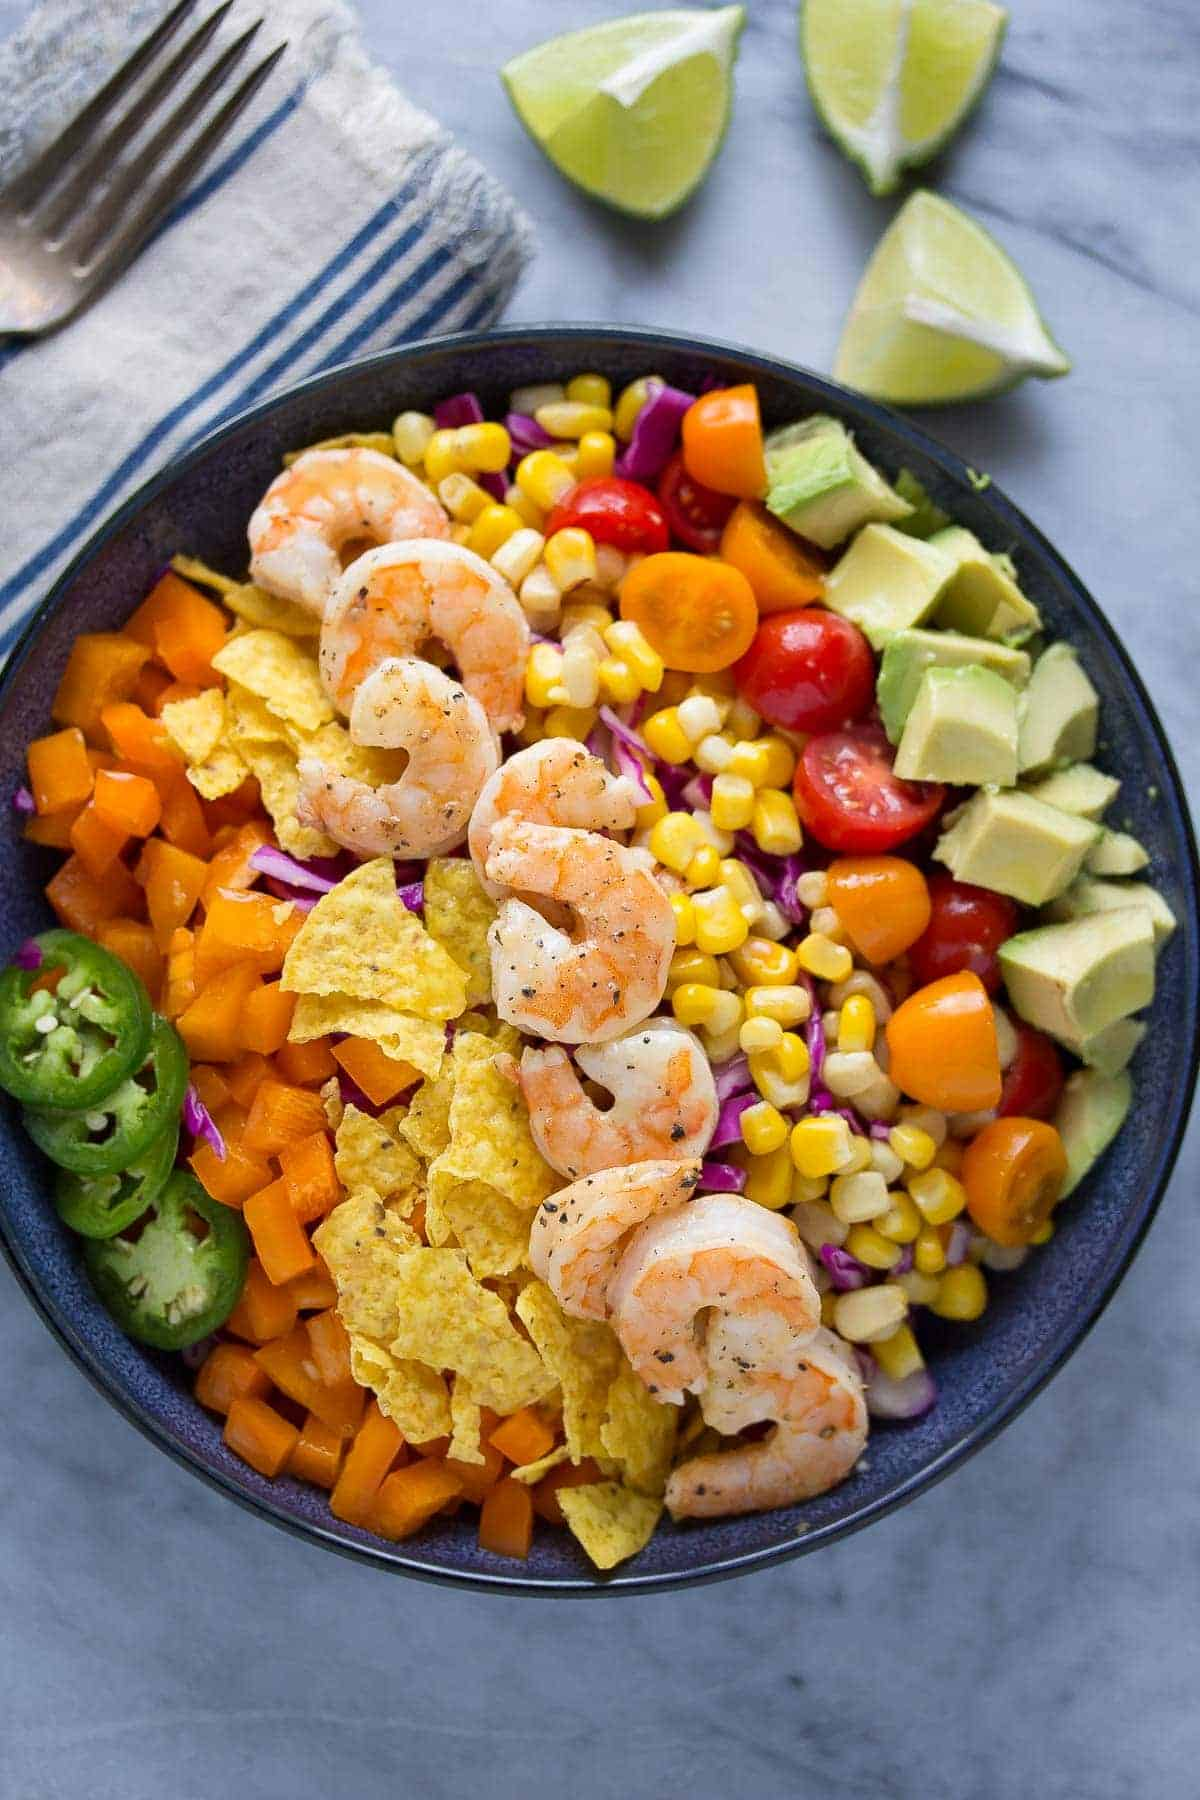 A light and fresh shrimp taco salad recipe that is packed full of veggies and tossed in a honey-lime vinaigrette. Ready in 20 minutes!